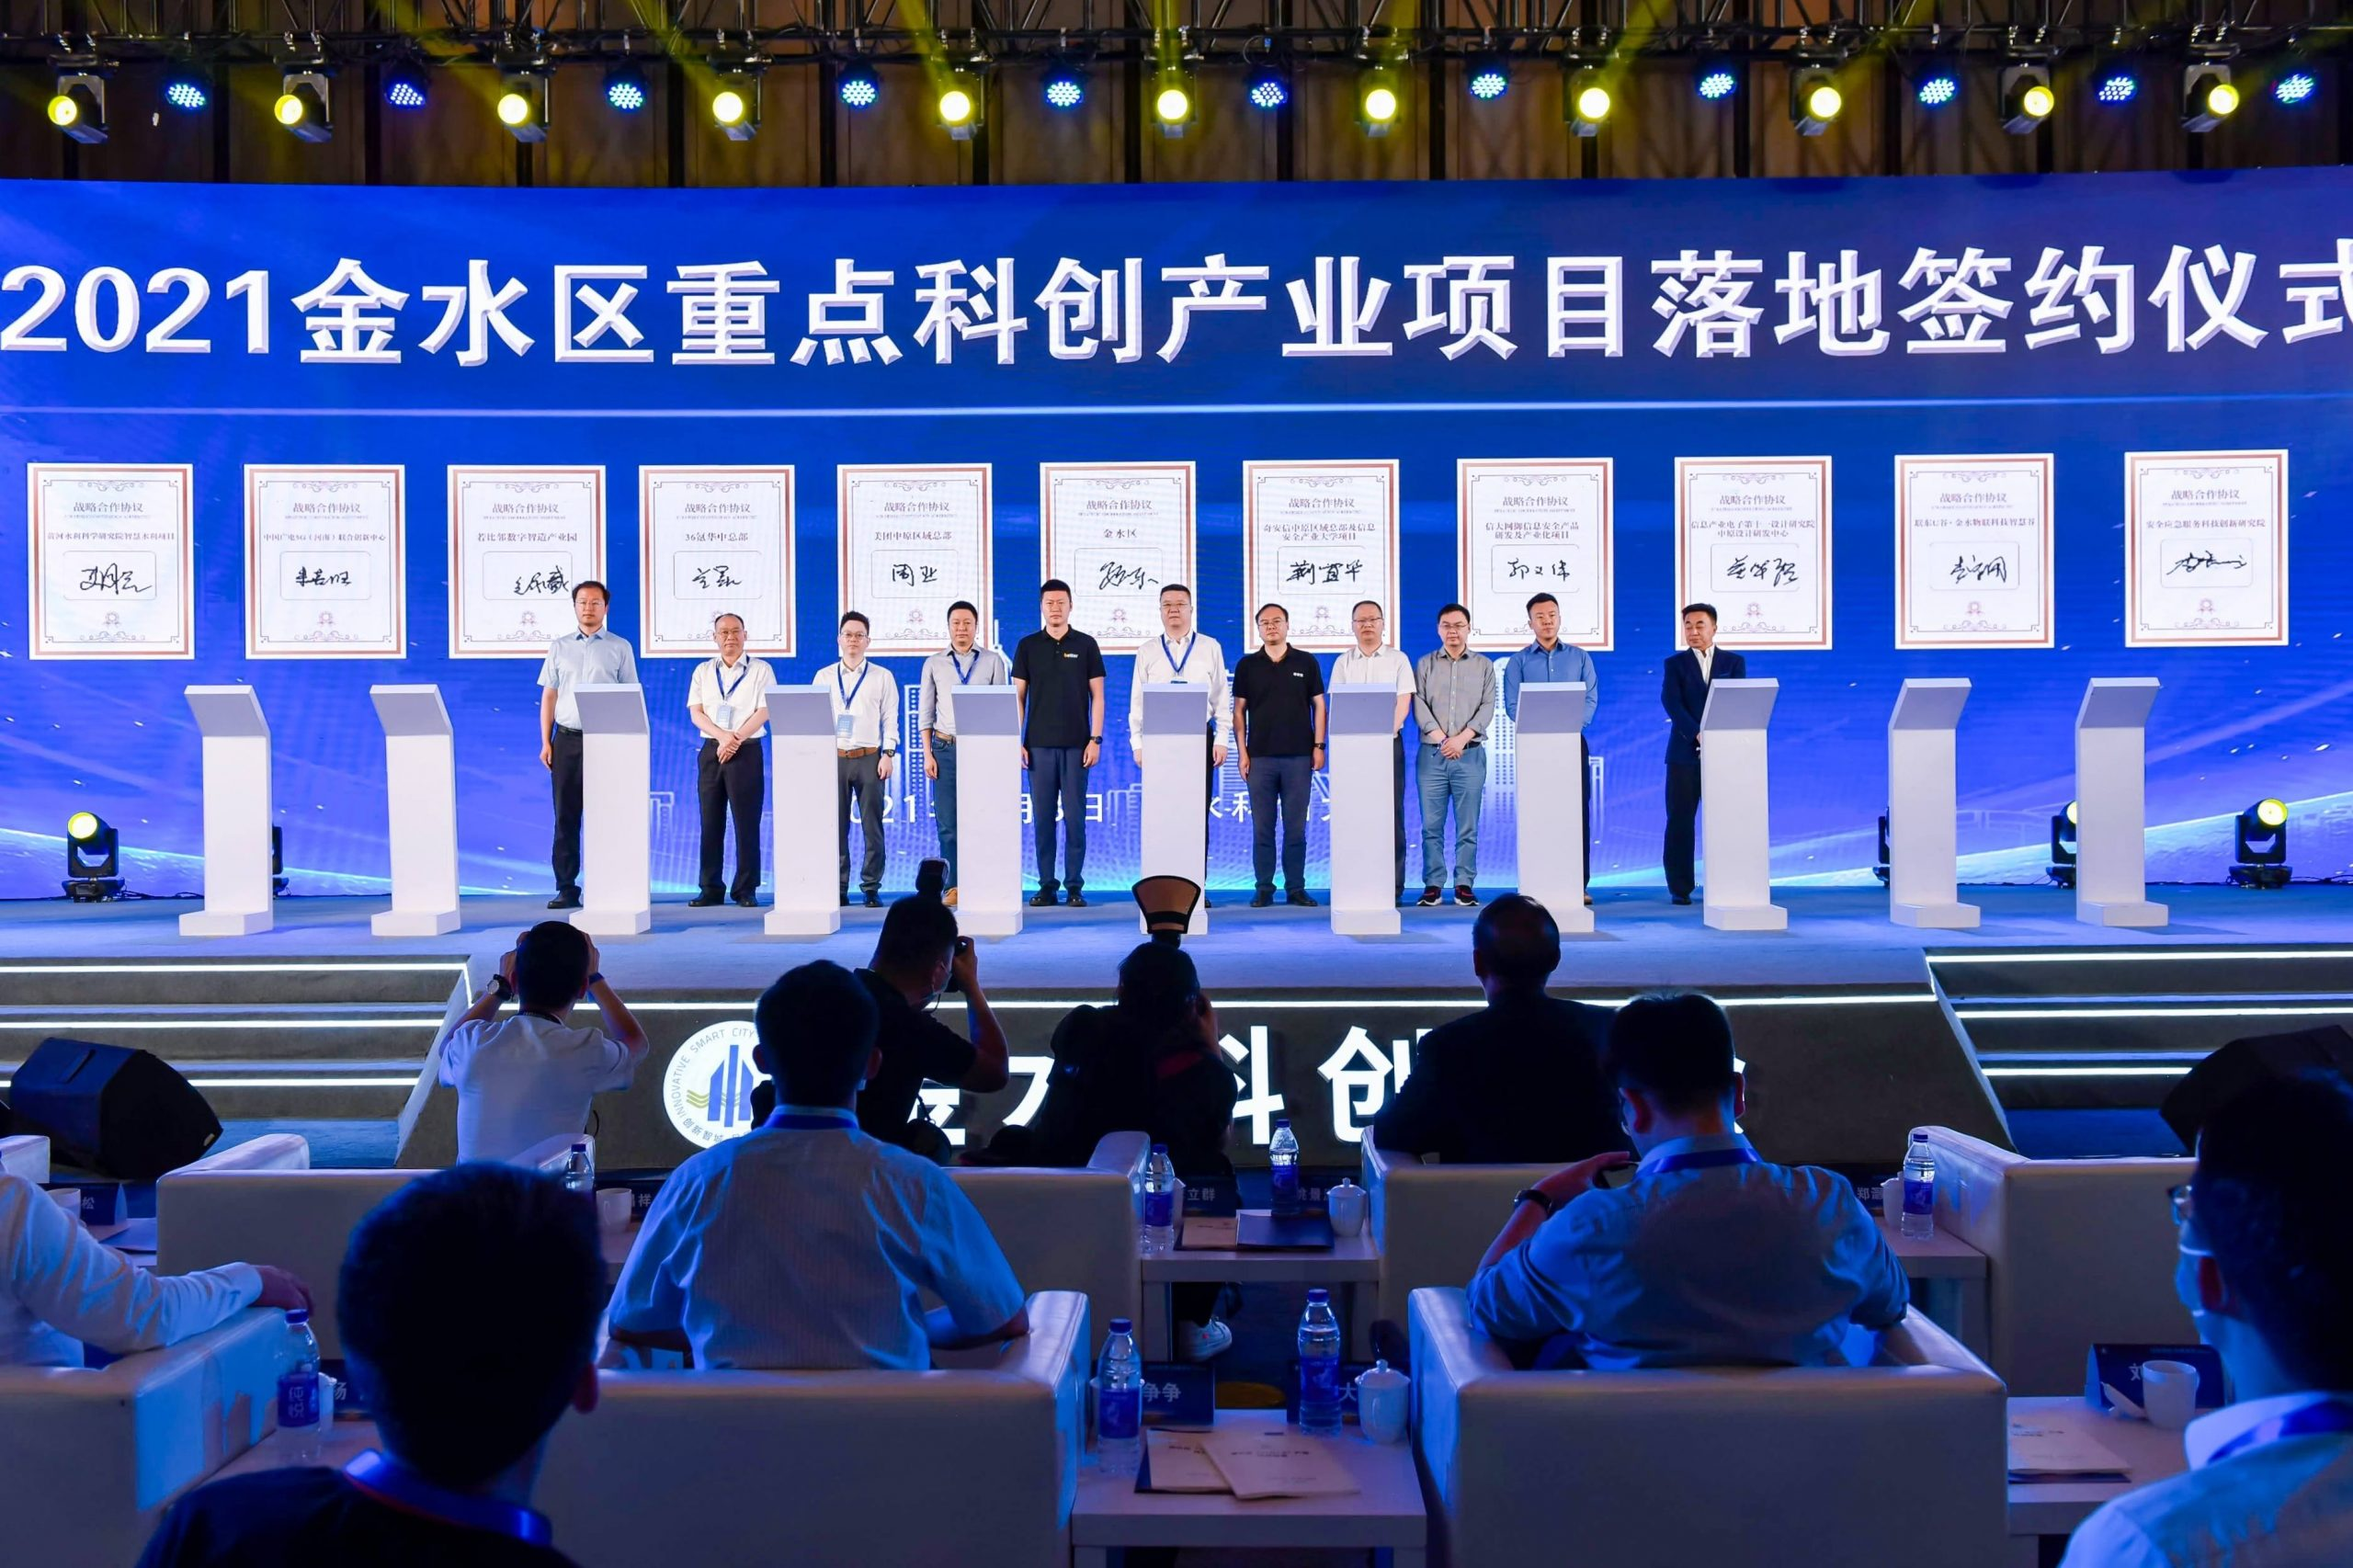 36Kr landed in Henan and joined hands with Jinshui District to provide new impetus for industrial empowerment